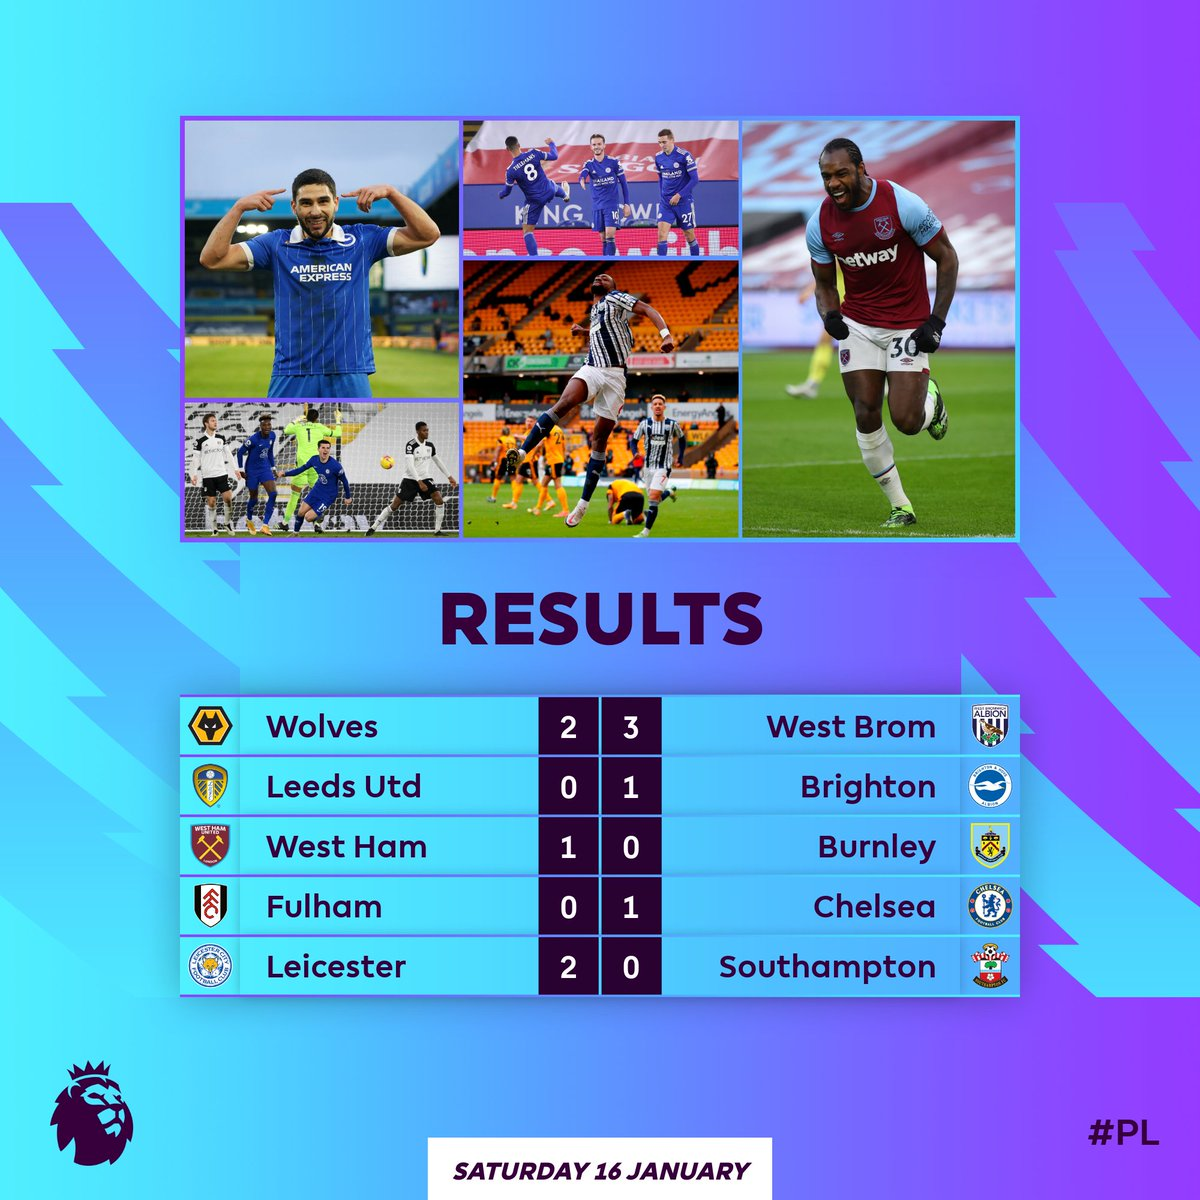 Which team put in the best performance on Saturday? 🤔